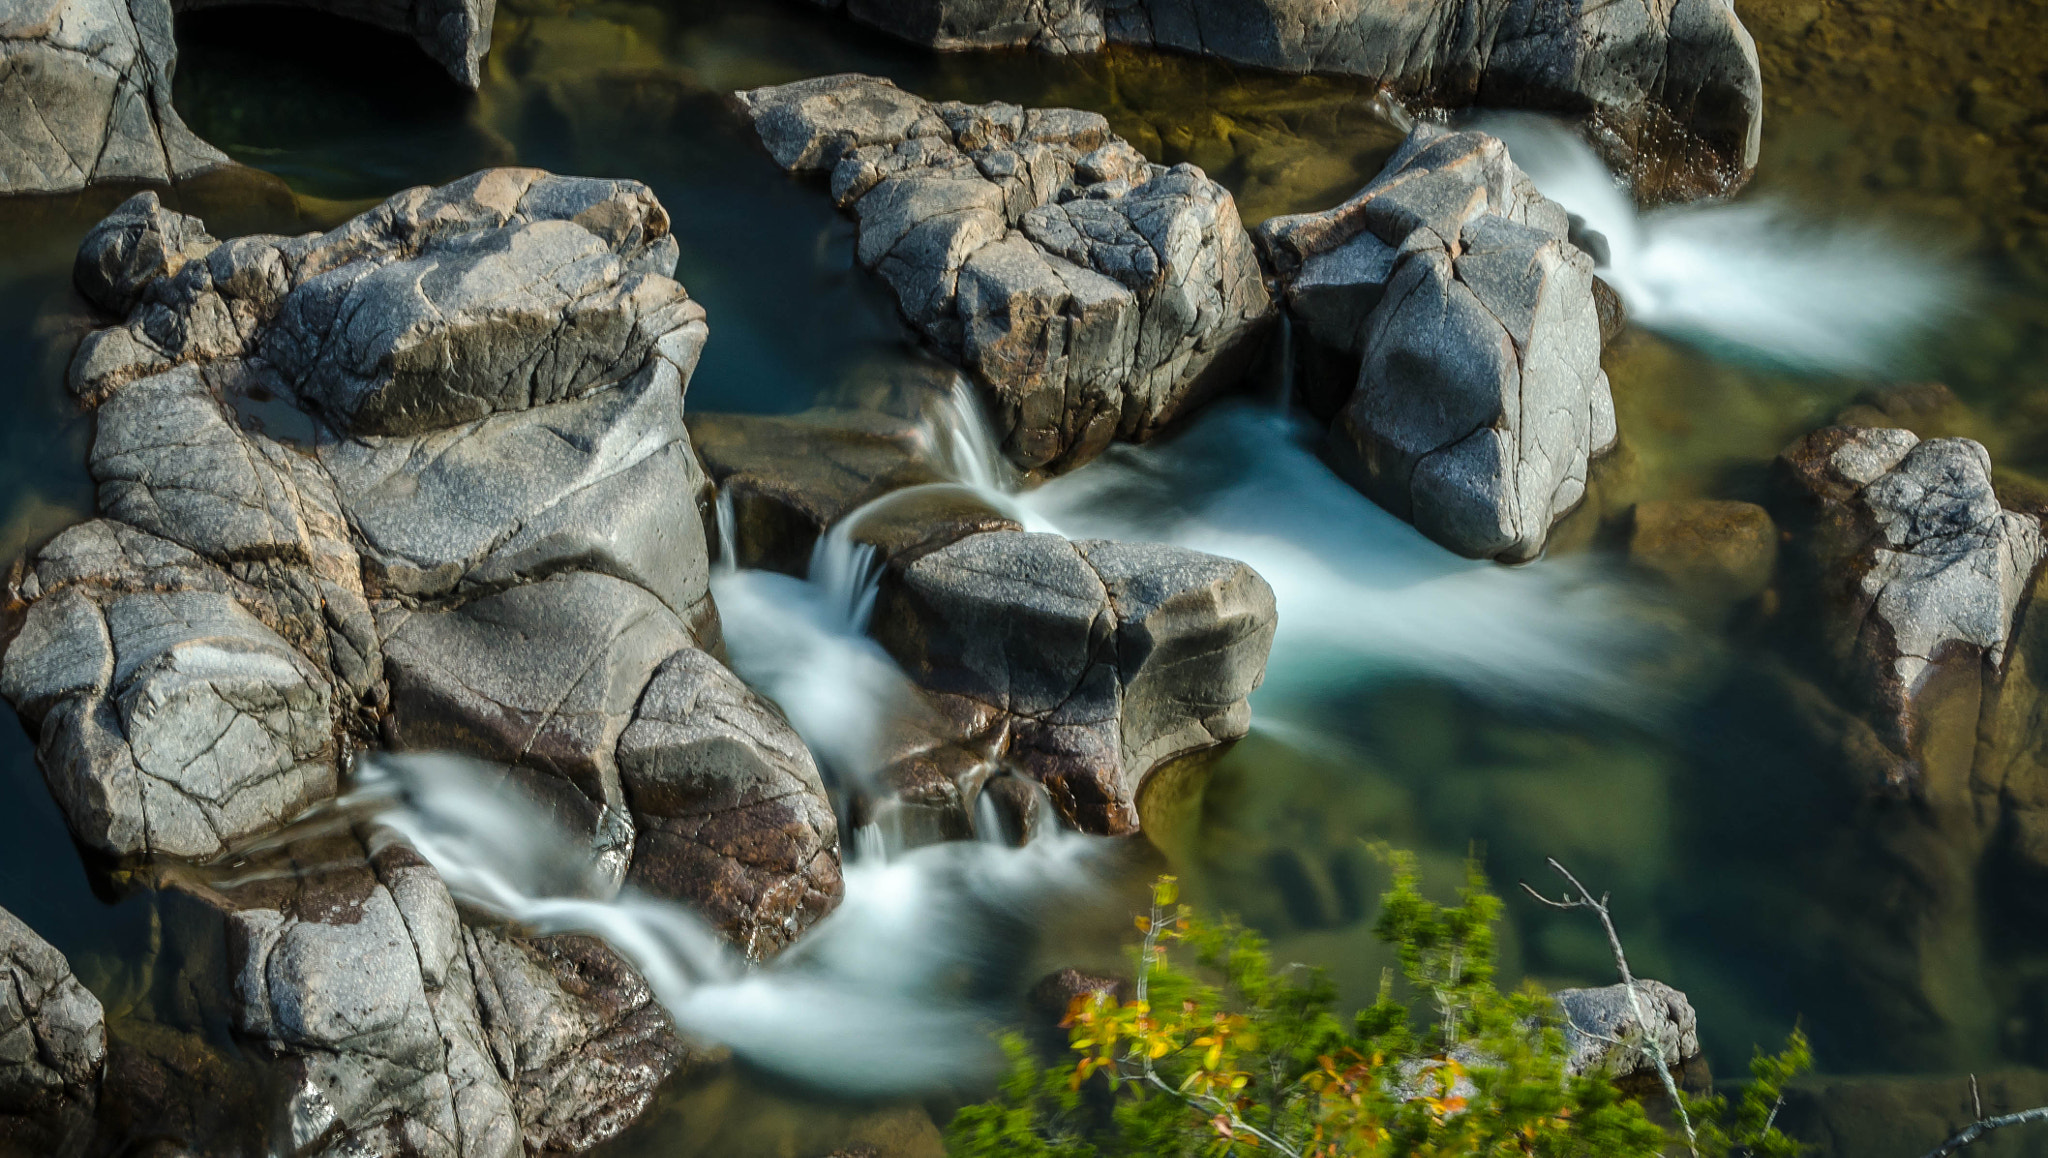 Photograph Johnson's Shut-ins by Jerry Dean on 500px